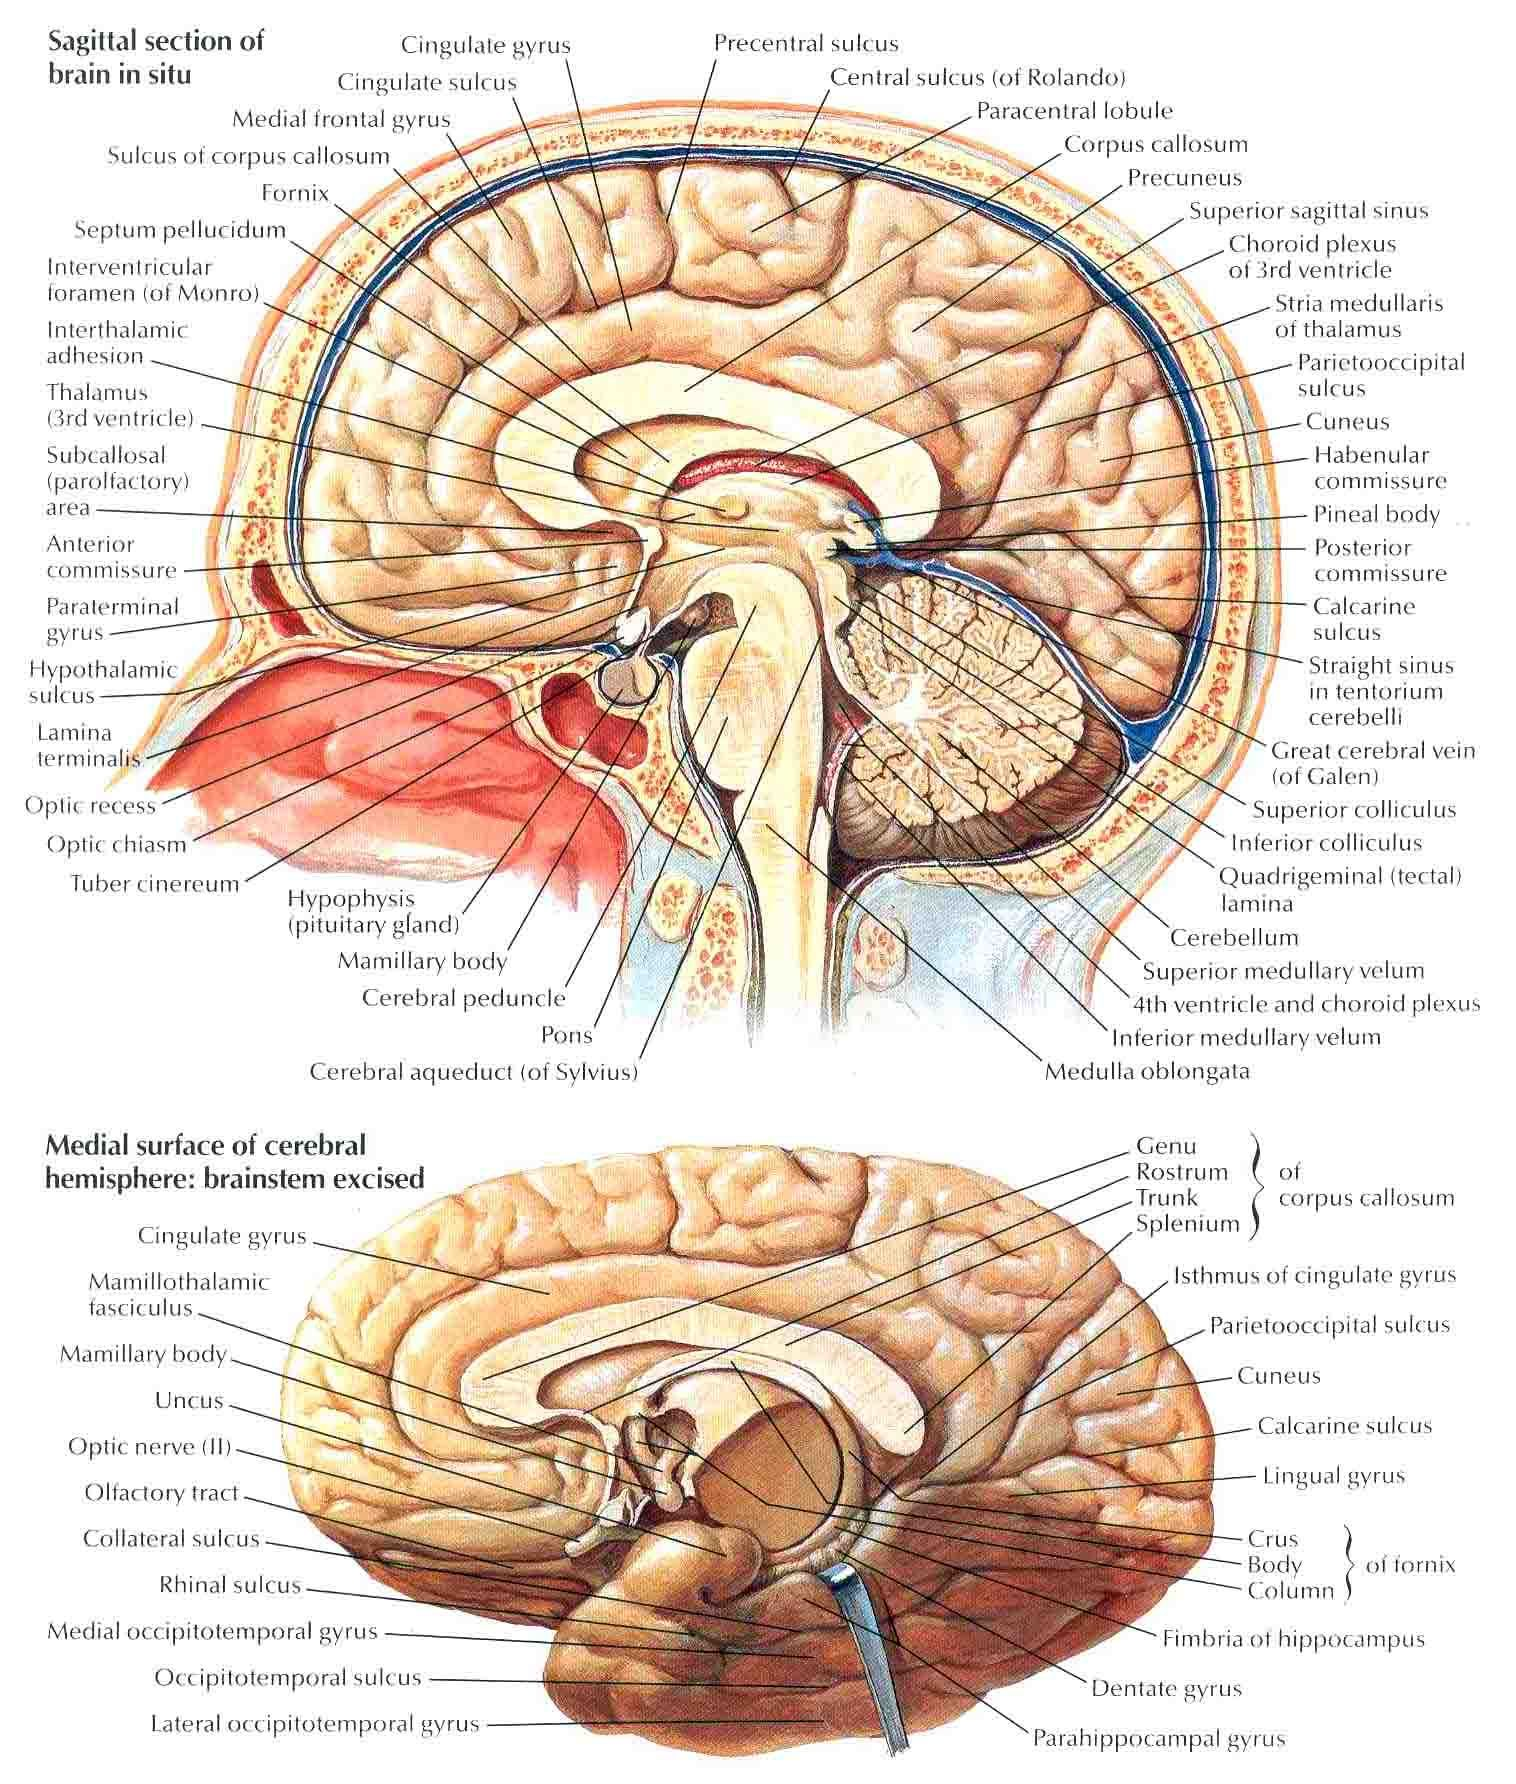 Brain Diagram Sagittal View Box And Whisker Explained Cerebrum Medial Jpg 15161784 Education Pinterest